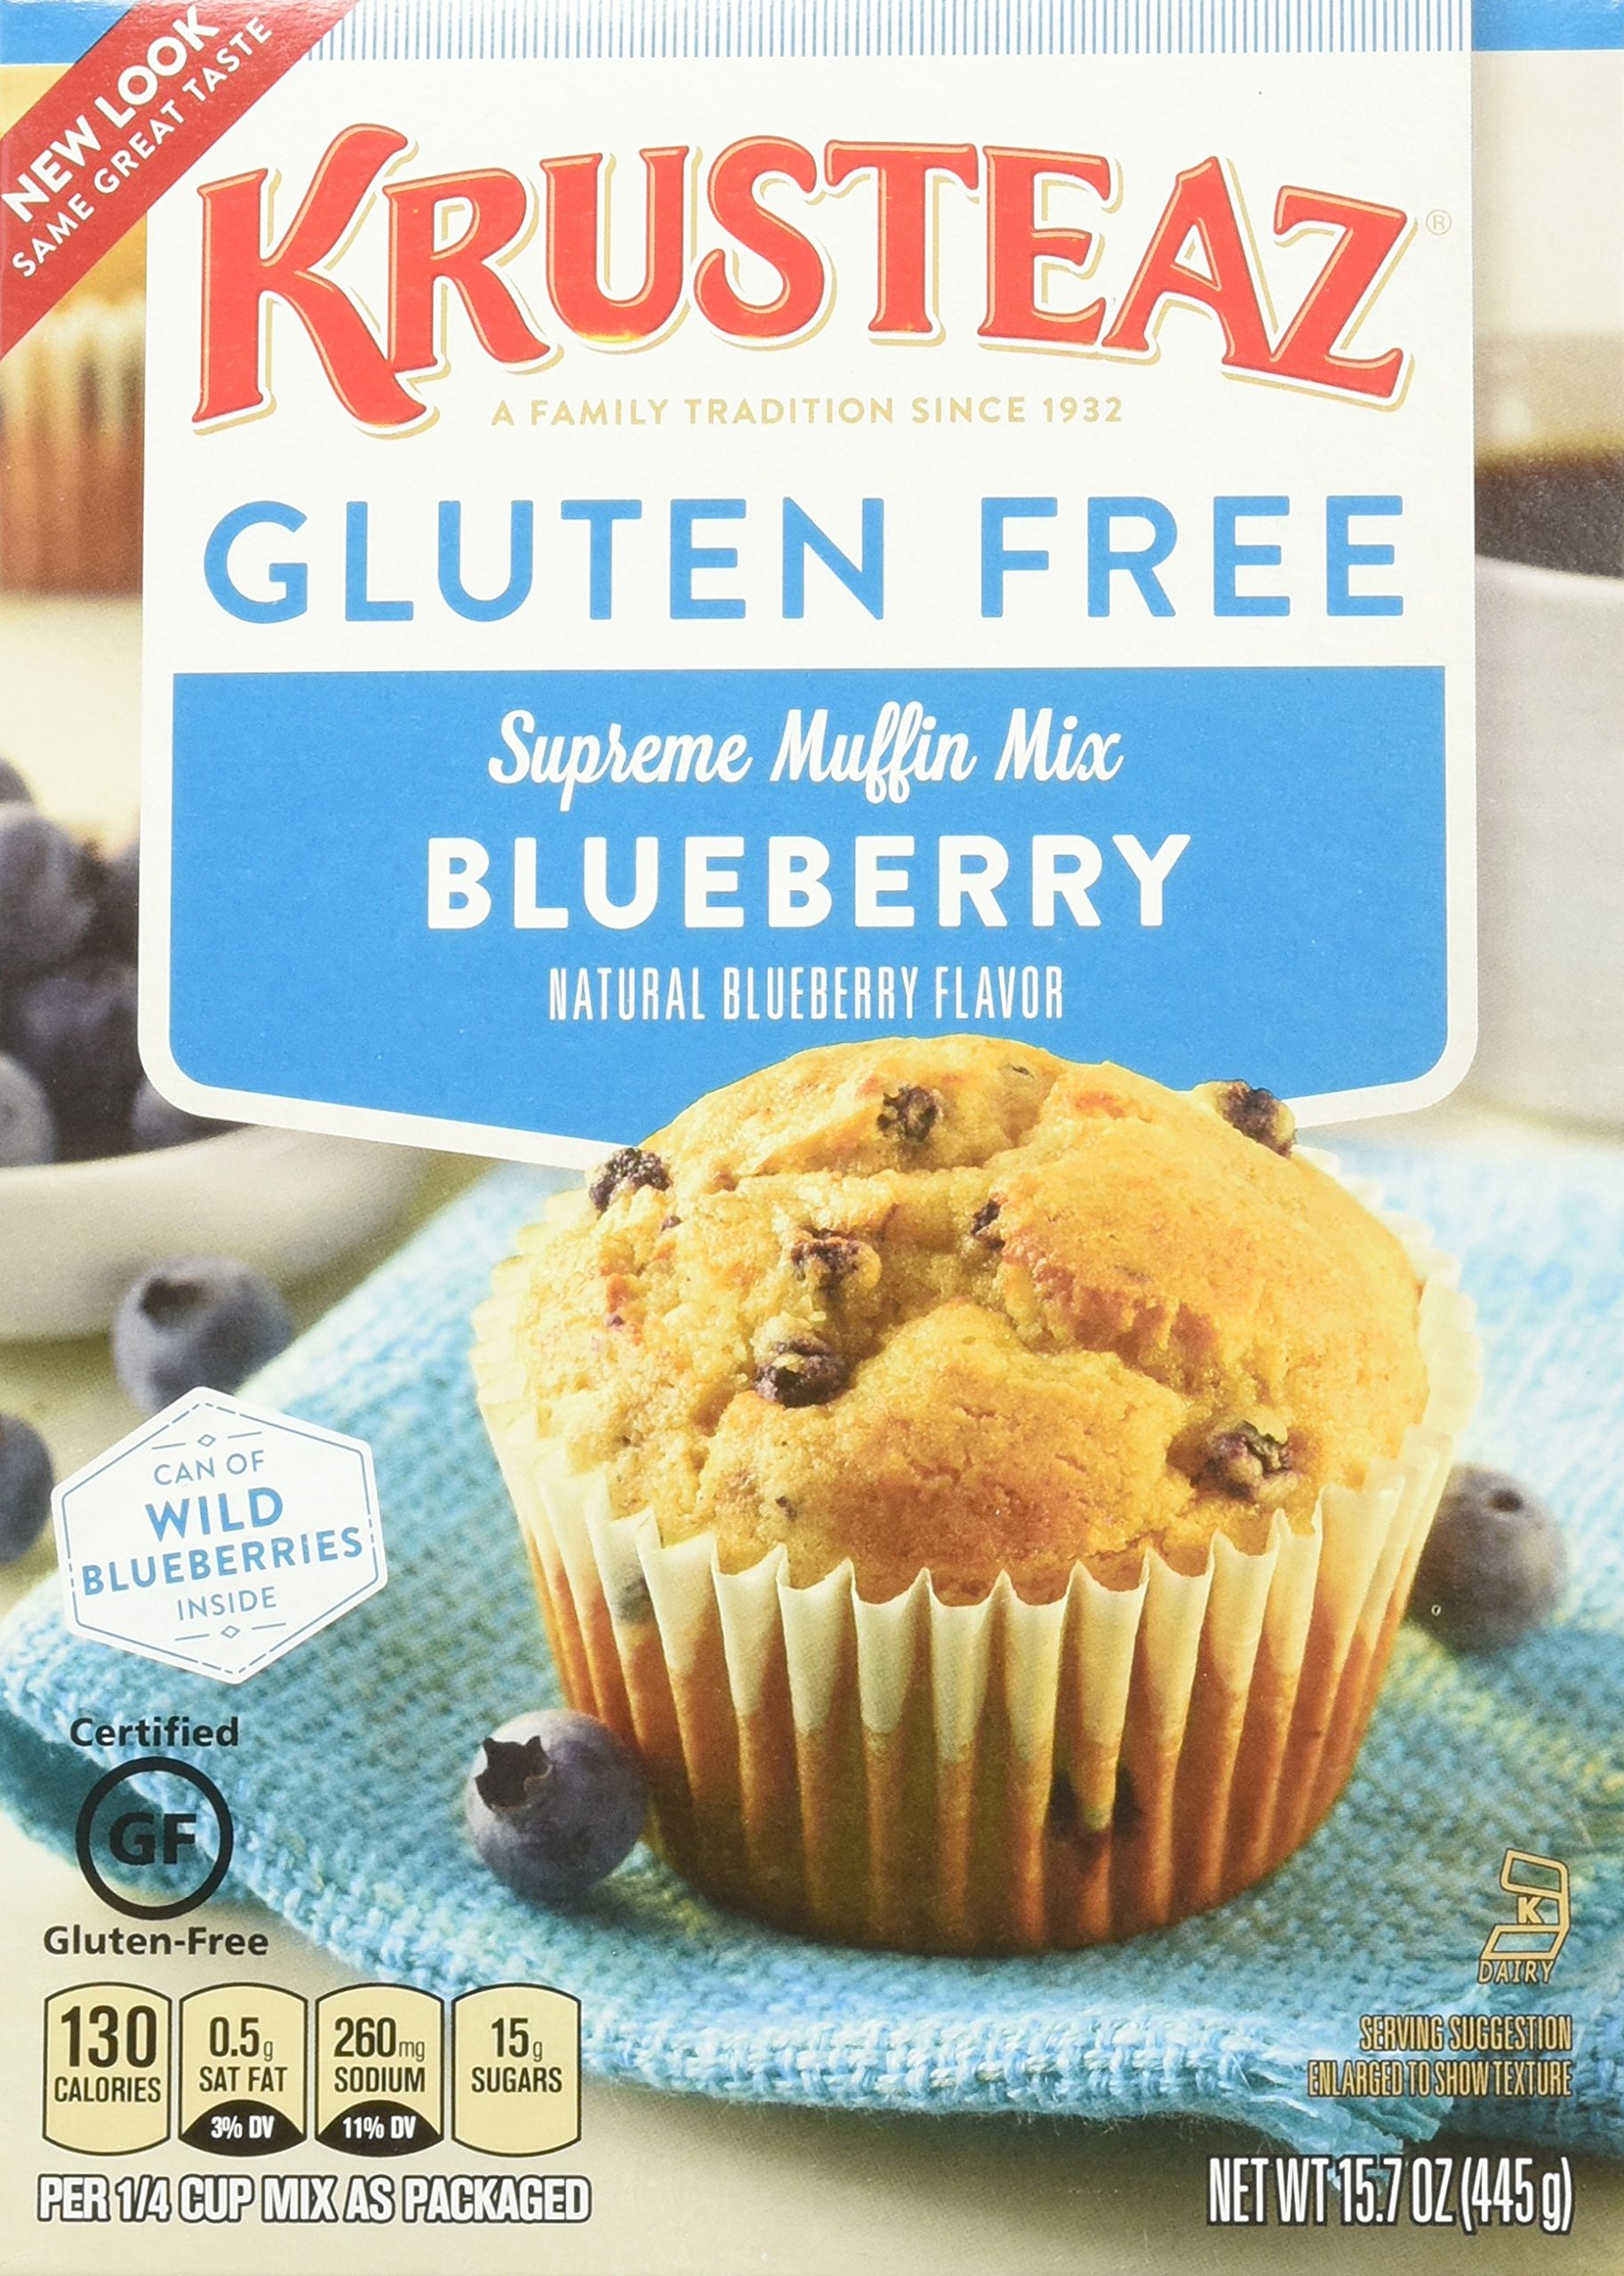 Krusteaz Wild Blueberry Supreme Muffin Mix, 17.1 Oz. Box (4 Pack)